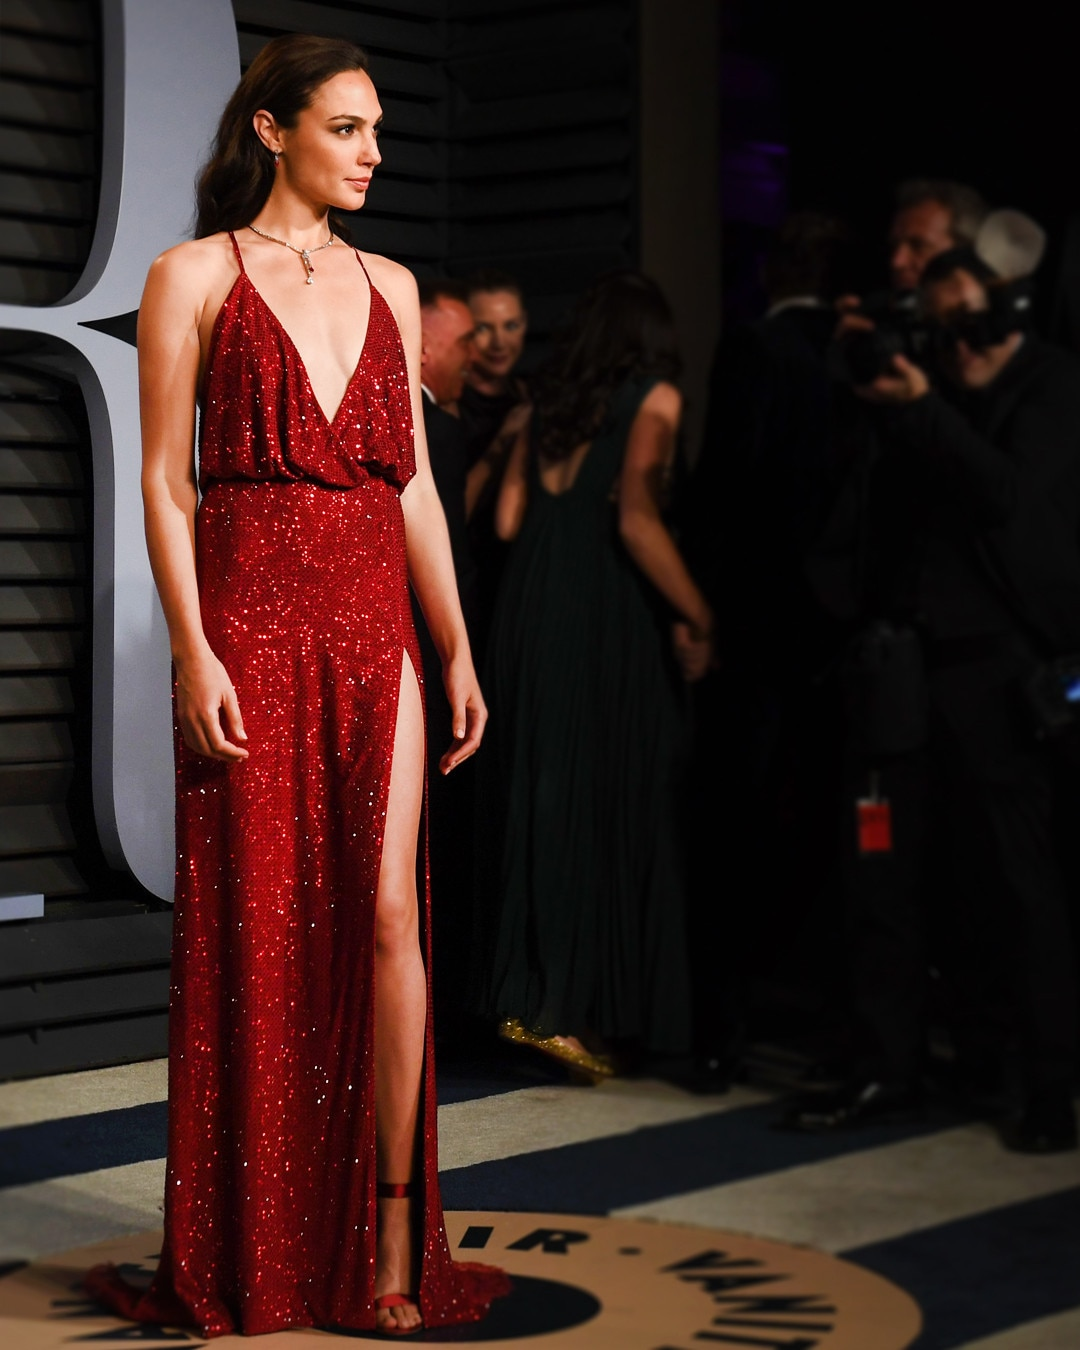 Black Dress For Teenager In Oscar Fashion Review